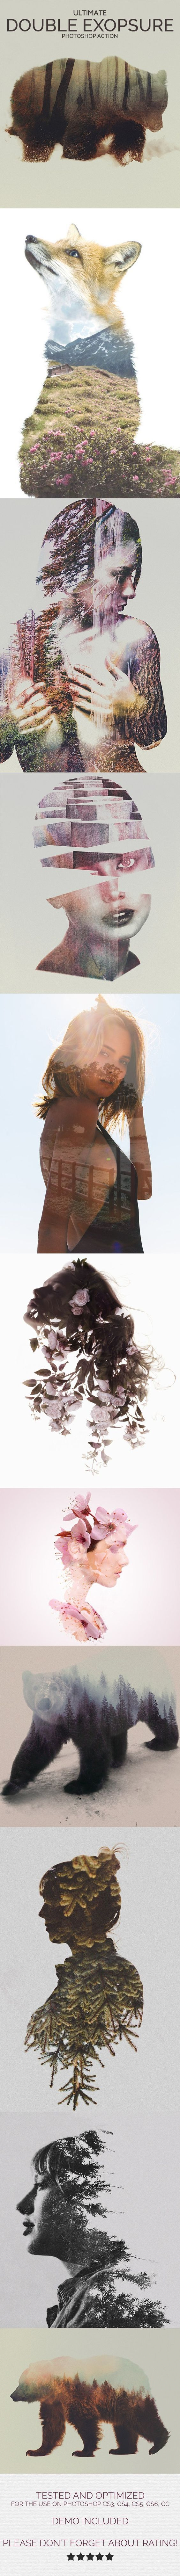 Ultimate Double Exposure Photoshop Action - Photo Effects Actions: